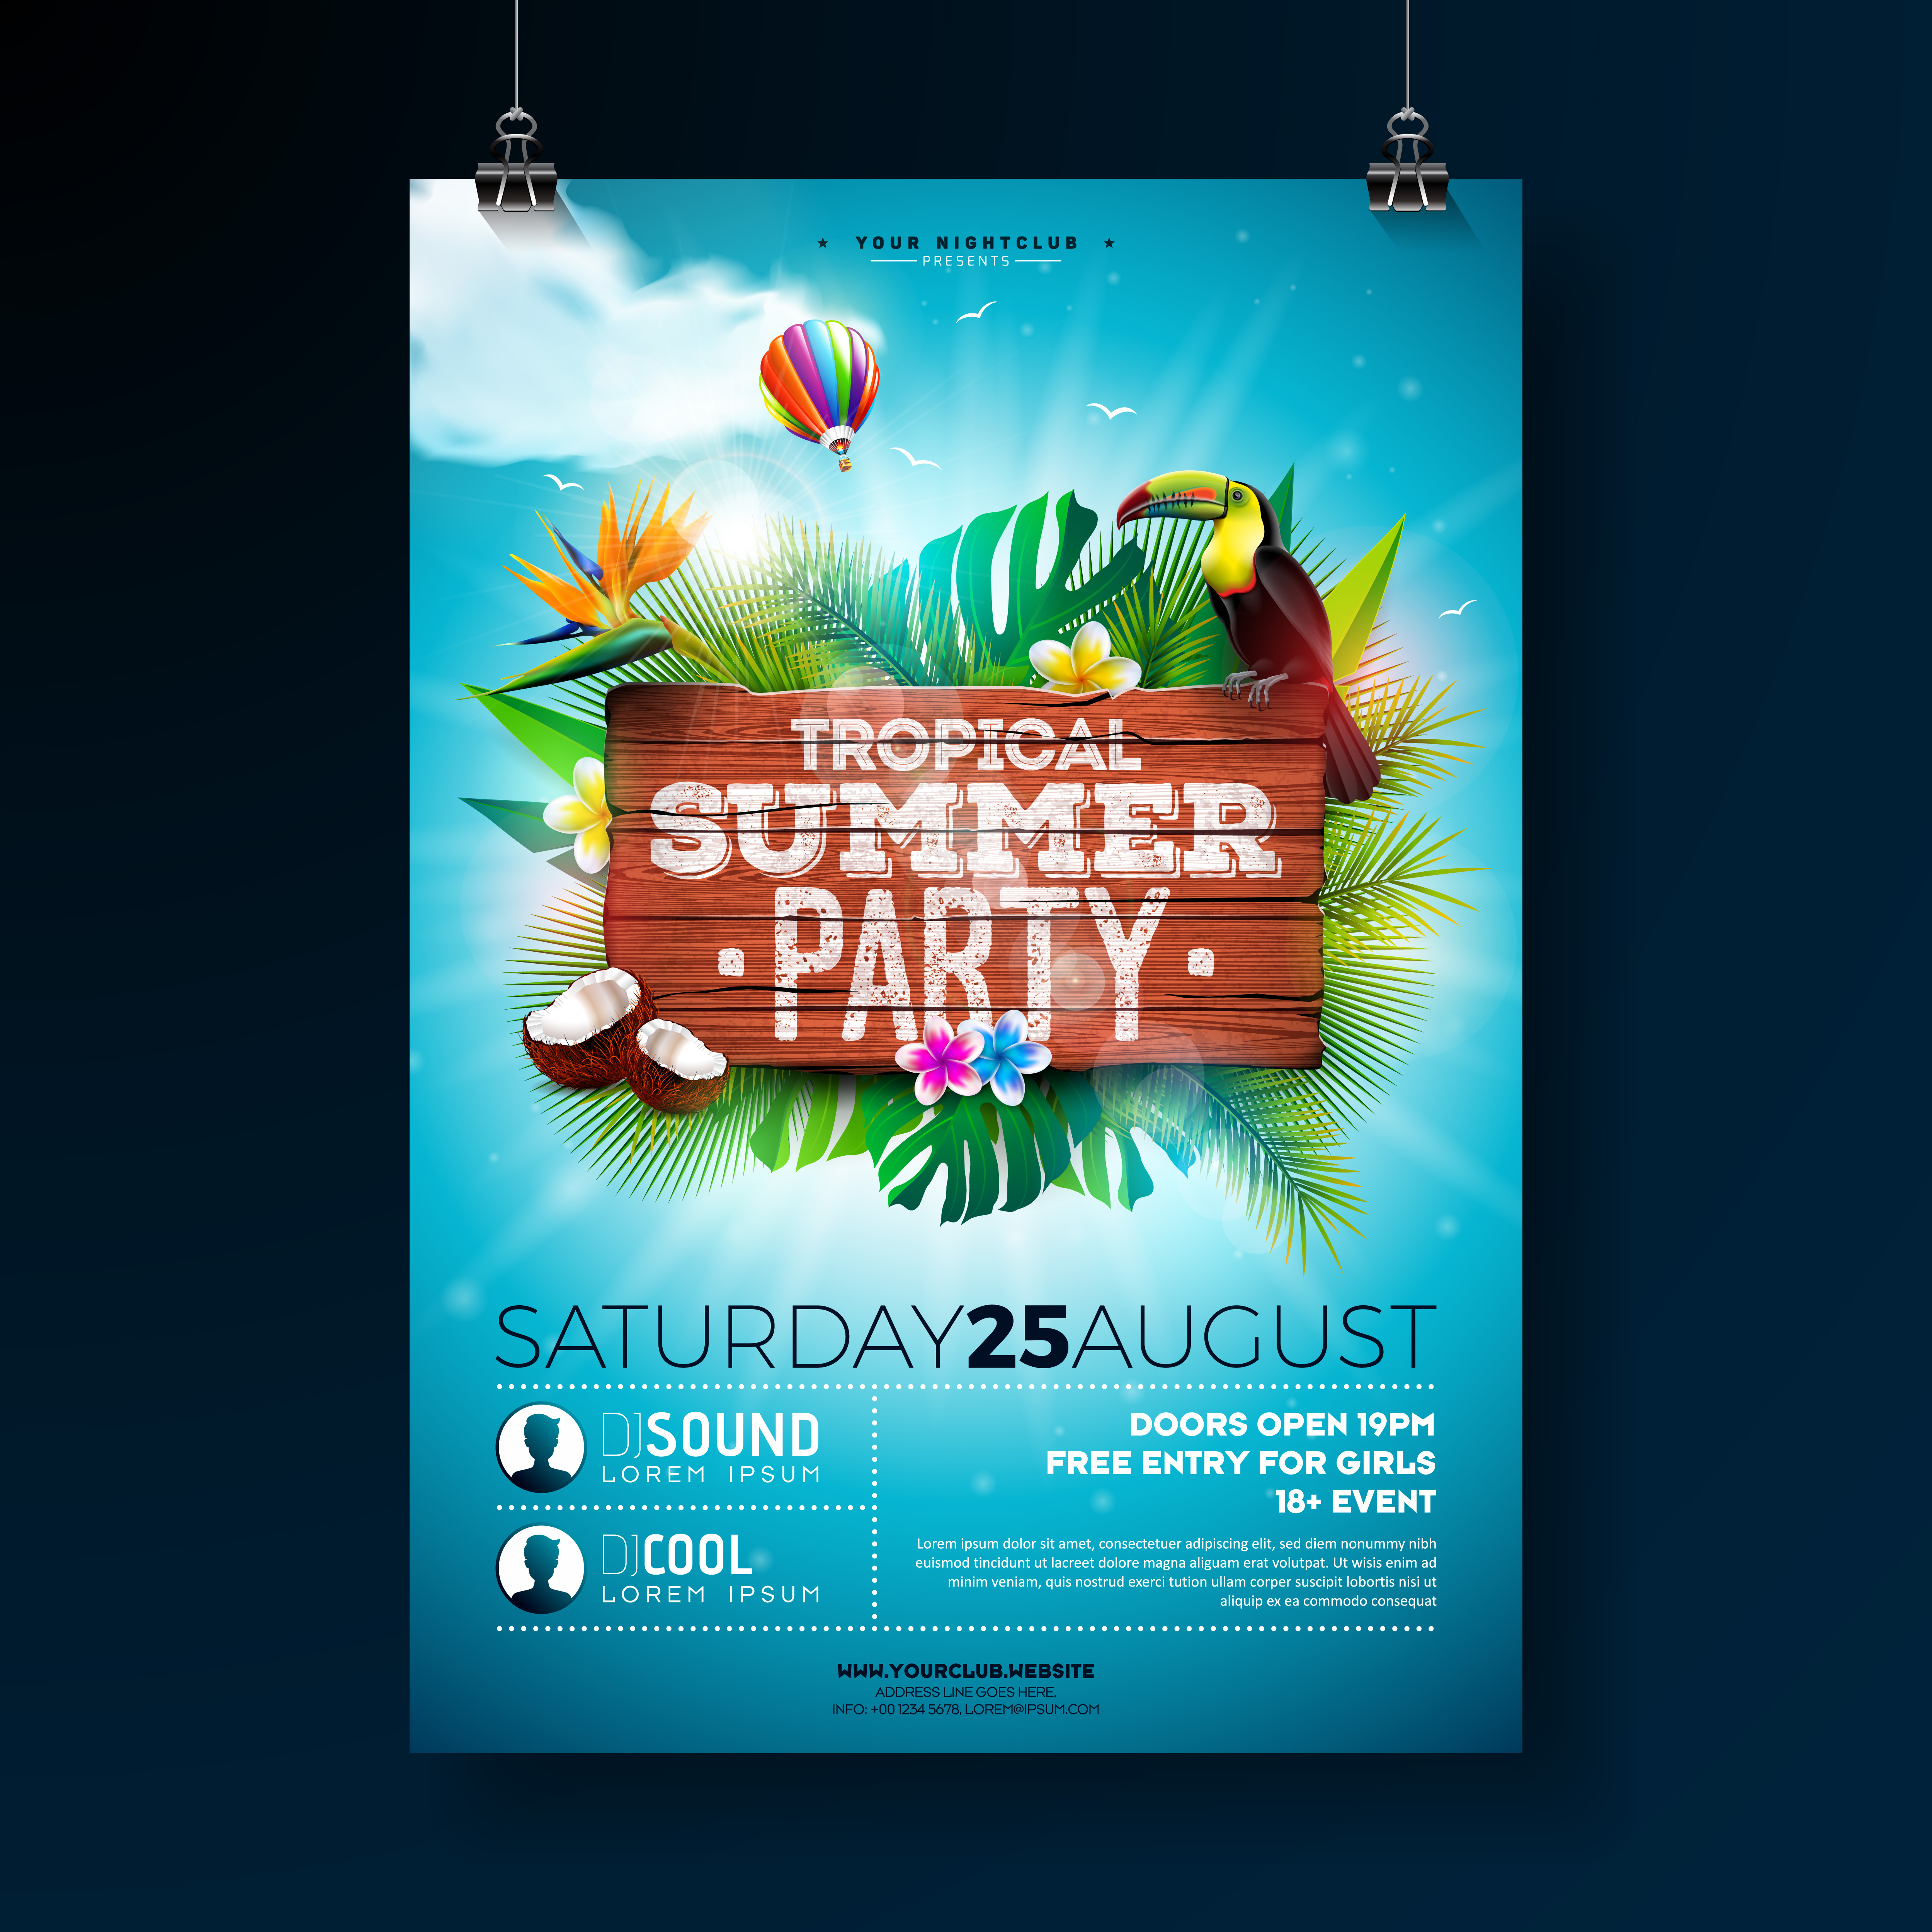 Summer Party for free online with no download!